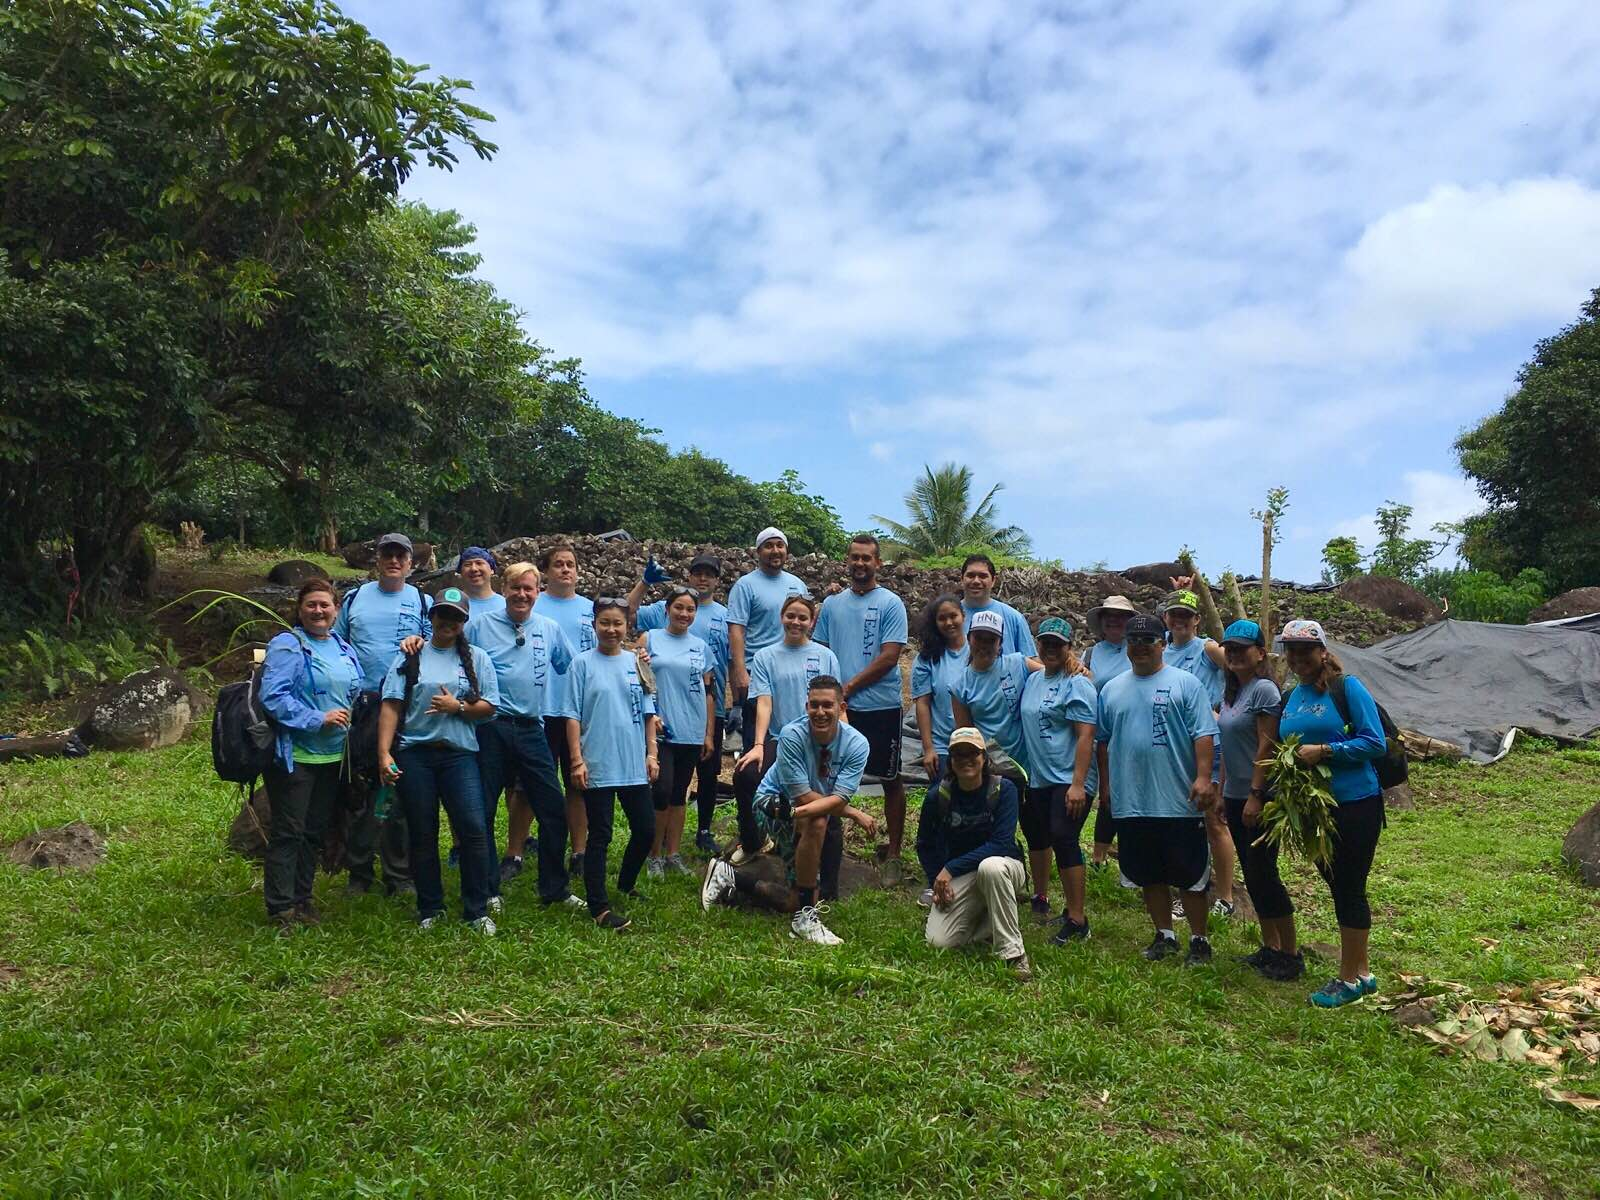 Hawaiian Airlines Team Kokua volunteering at Maunawila Heiau, O'ahu.